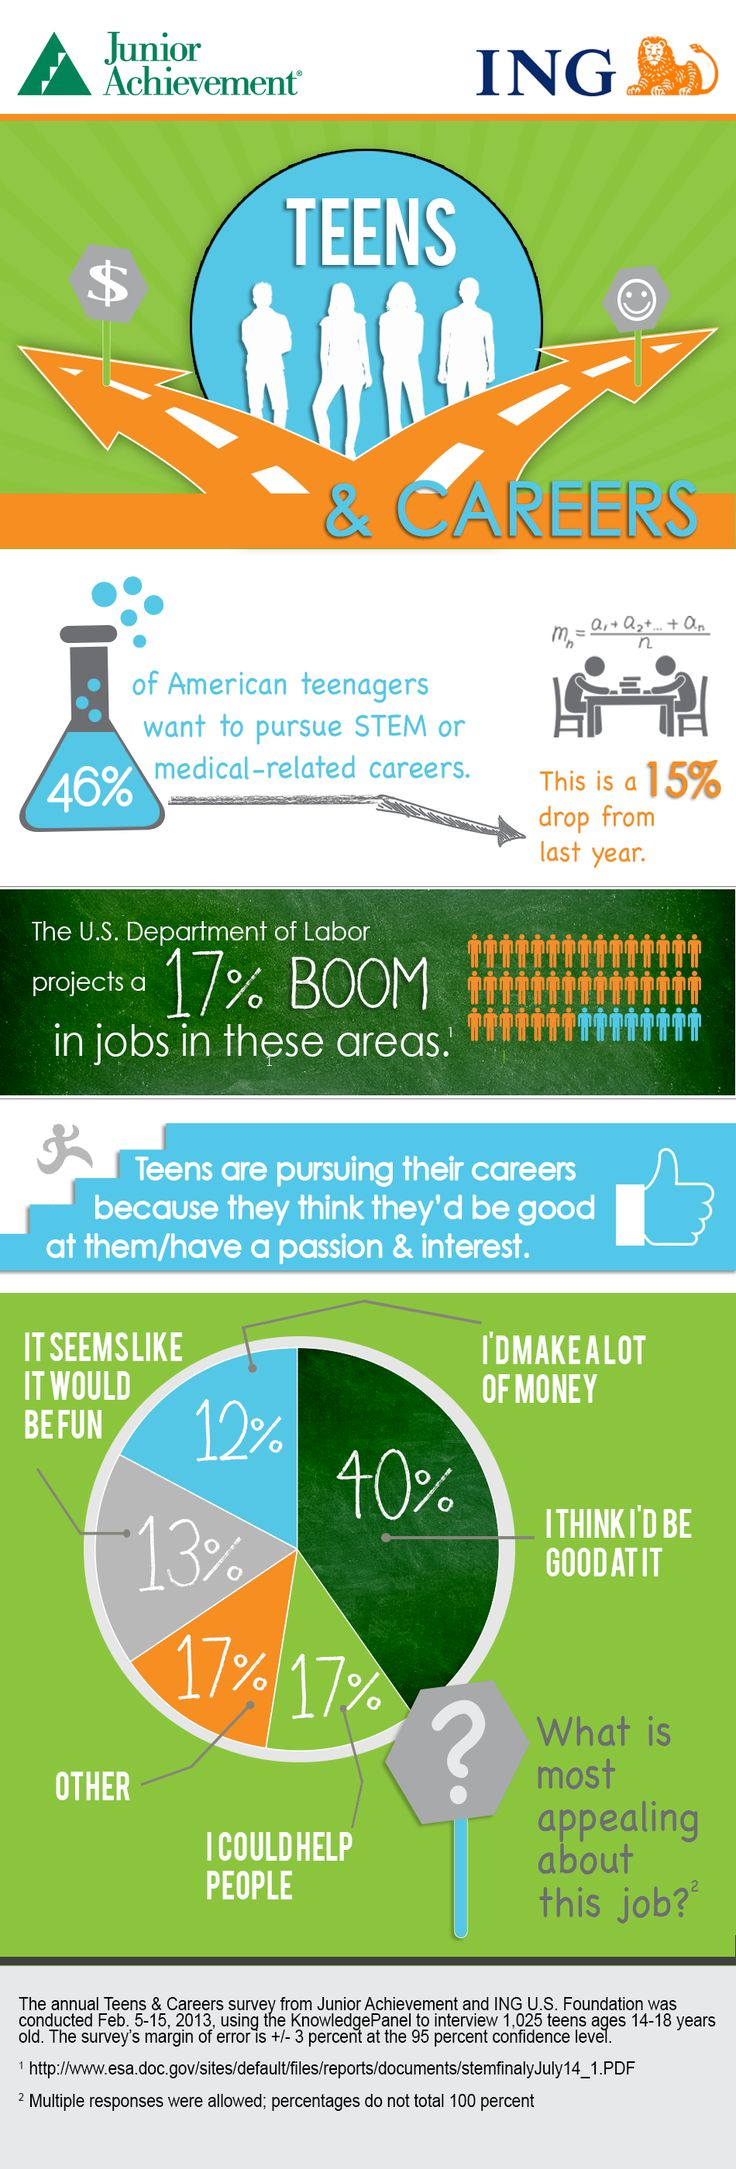 Junior Achievement (JA) and the ING U.S. Foundation's 2013 Teens & Careers survey reveals a substantial national year-over-year decline in teens' interest in science, technology, engineering, math (STEM) and medical-related fields.